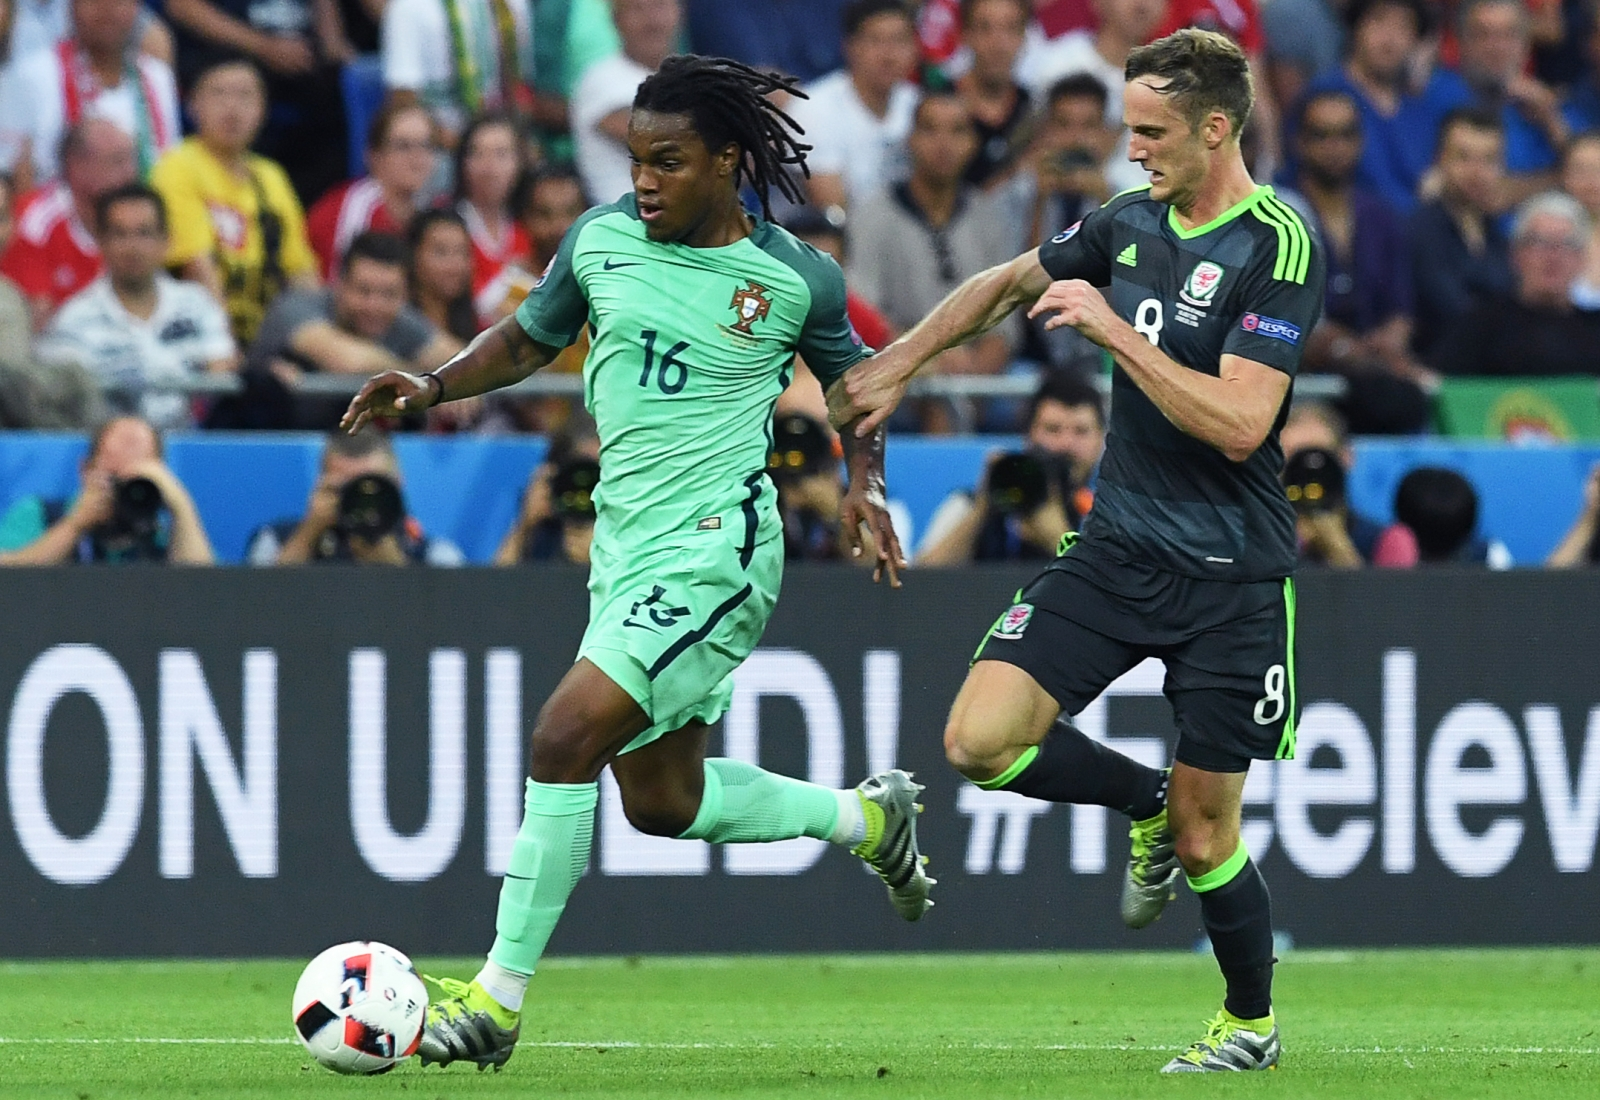 Renato Sanches on the ball